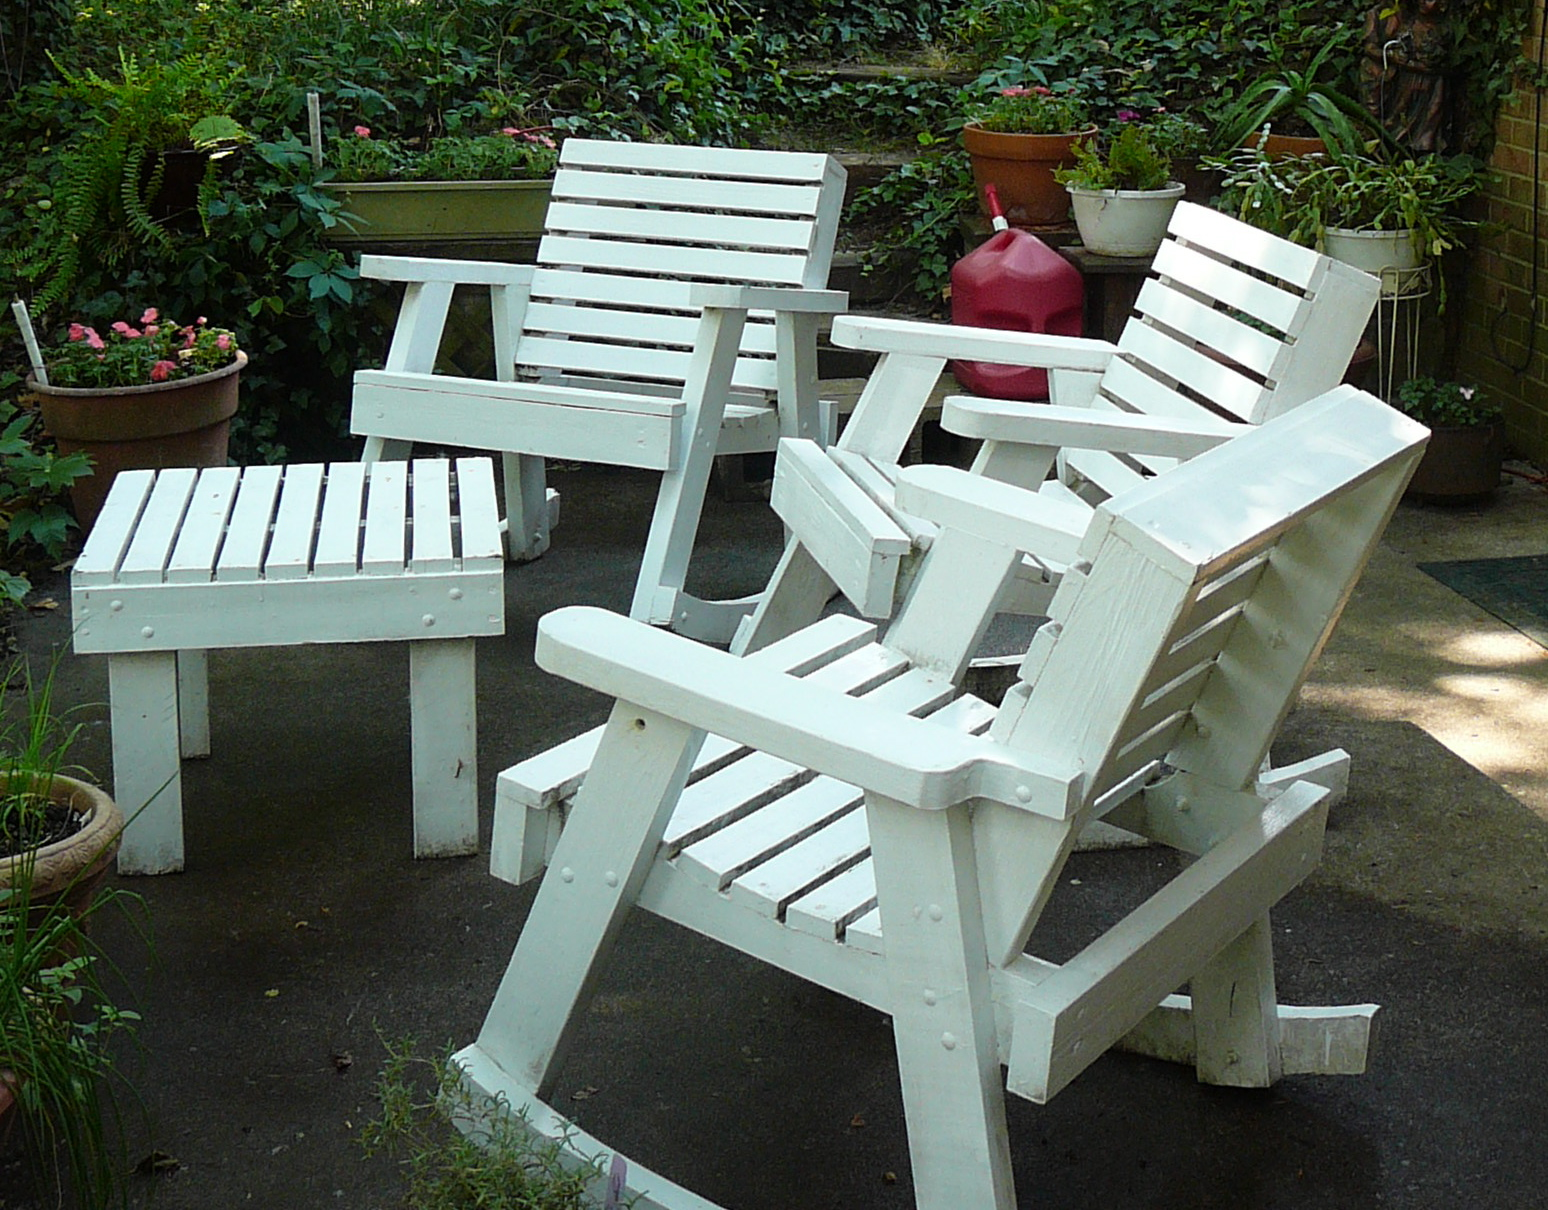 Charmant Cleaning Painted Wooden Outdoor Furniture